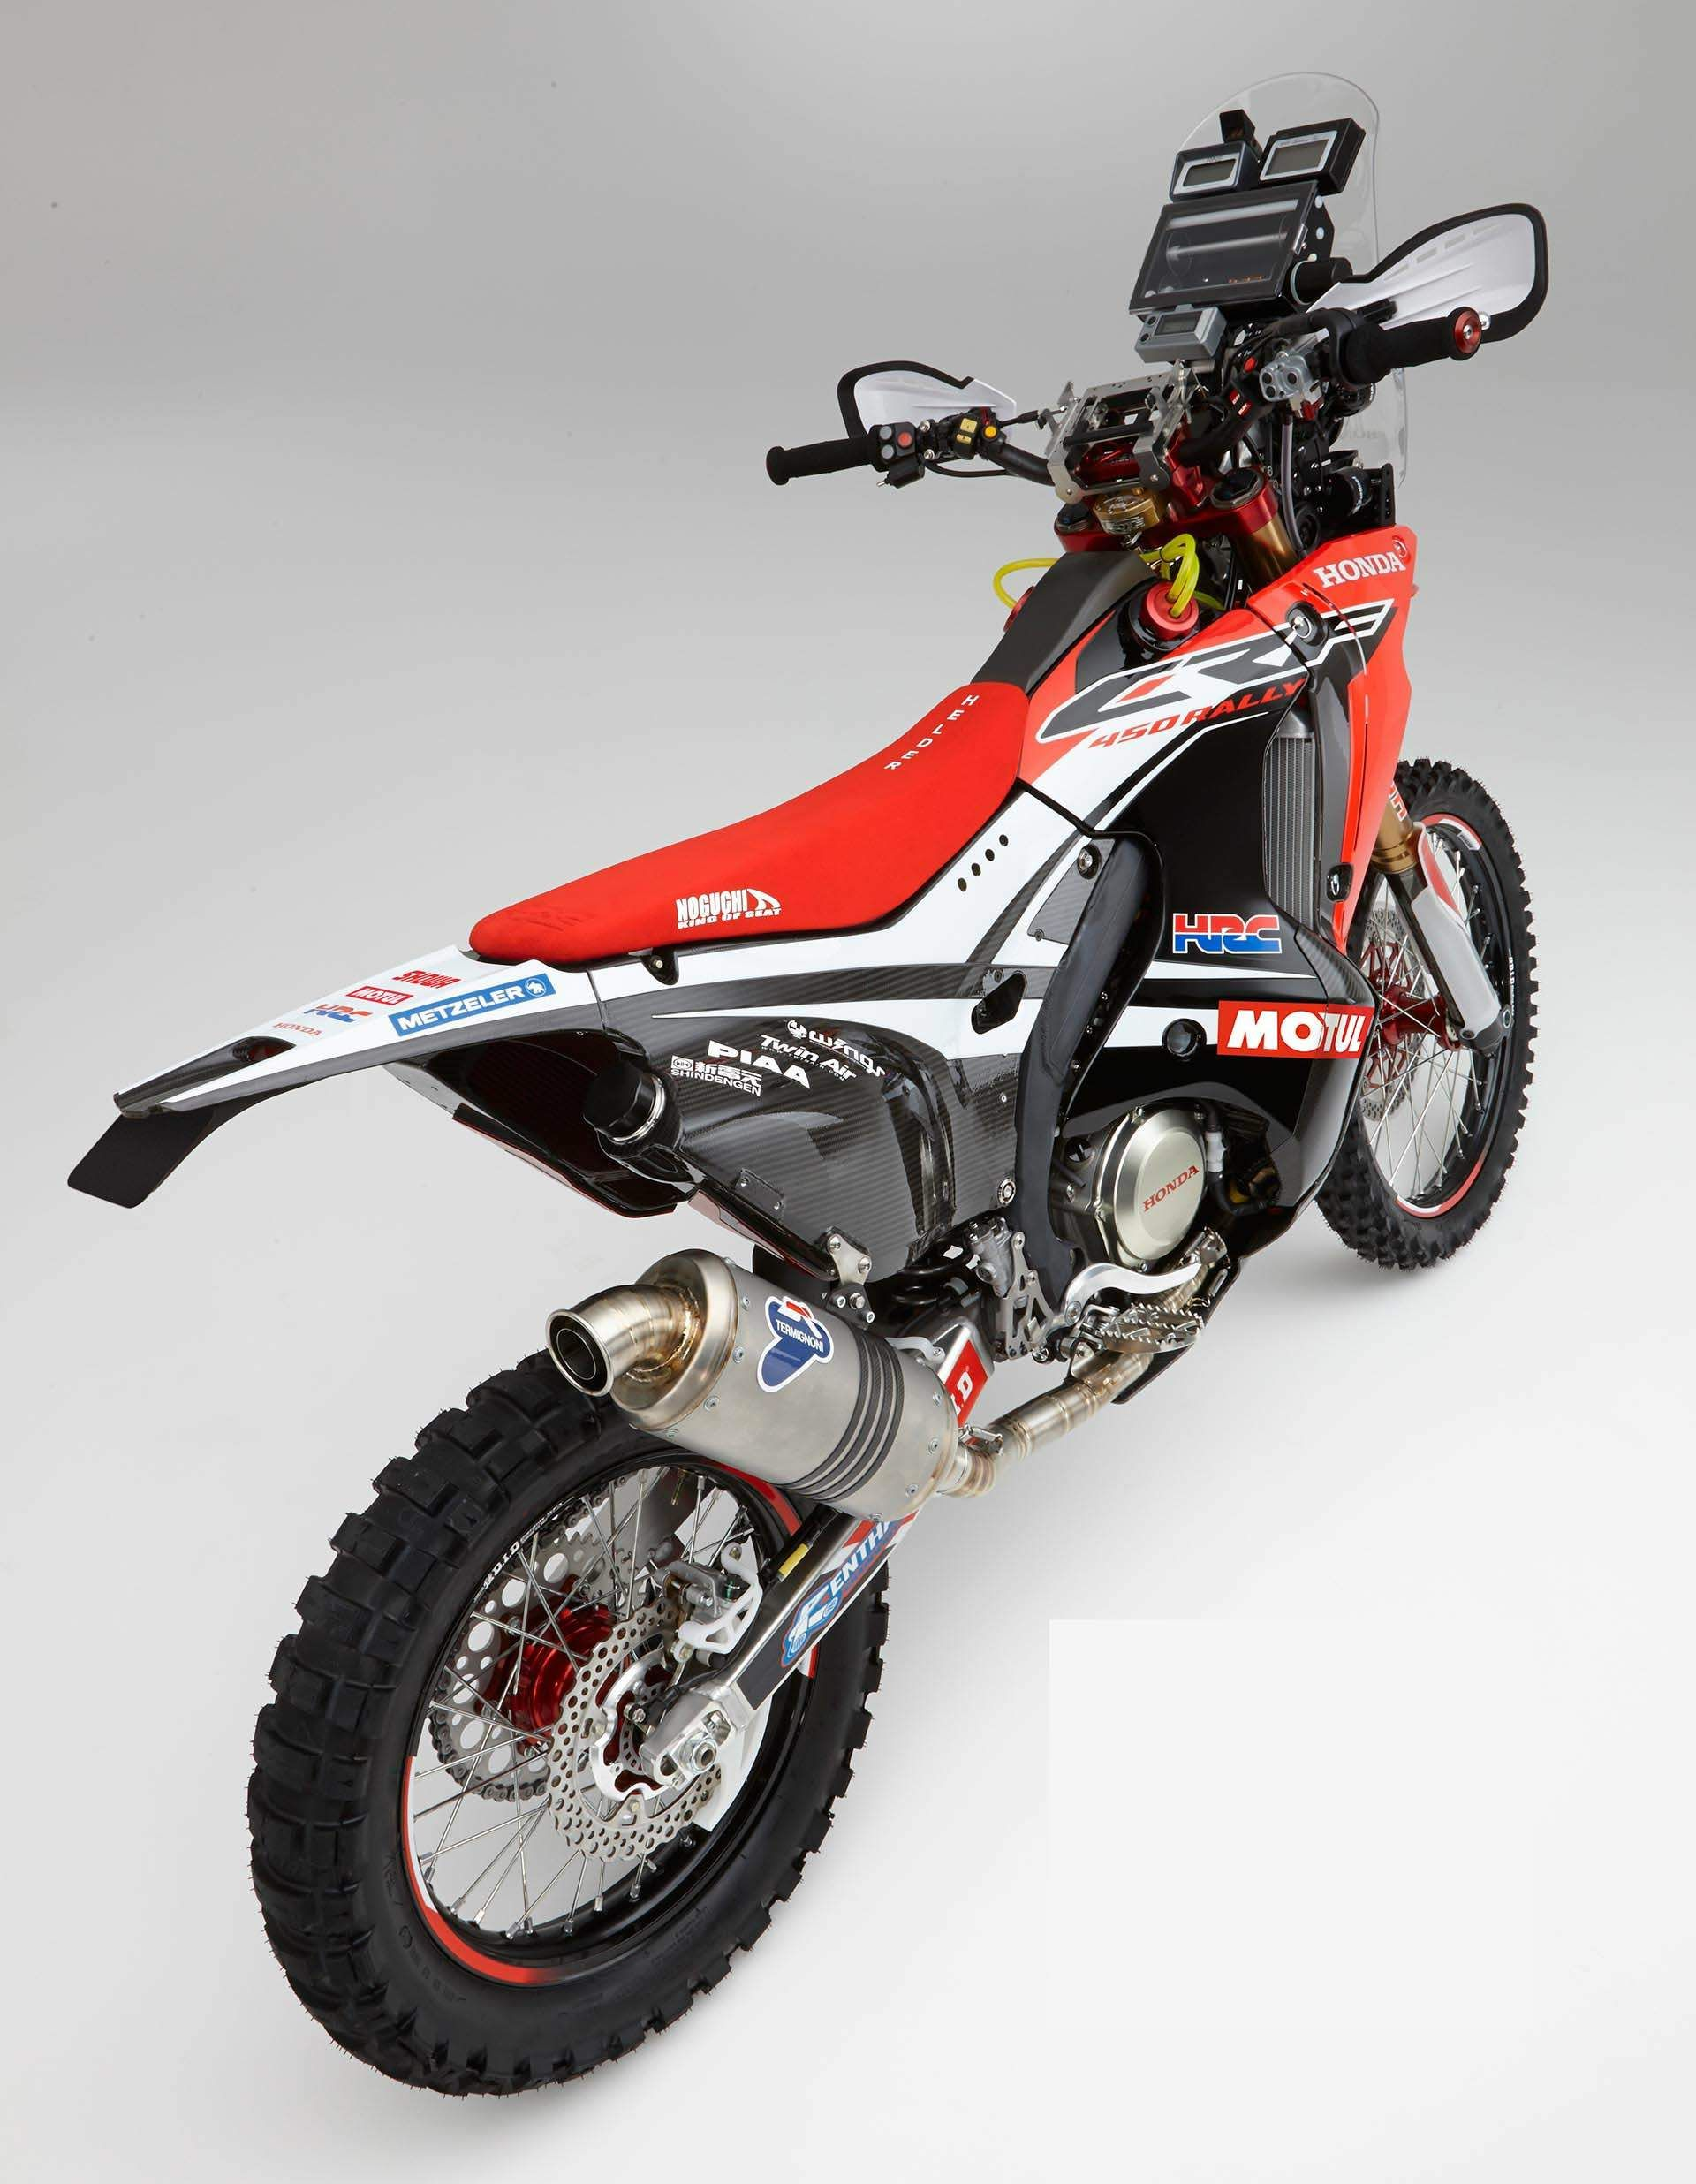 Honda CRF450 Rally | Toys | Enduro motorcycle, Honda ...